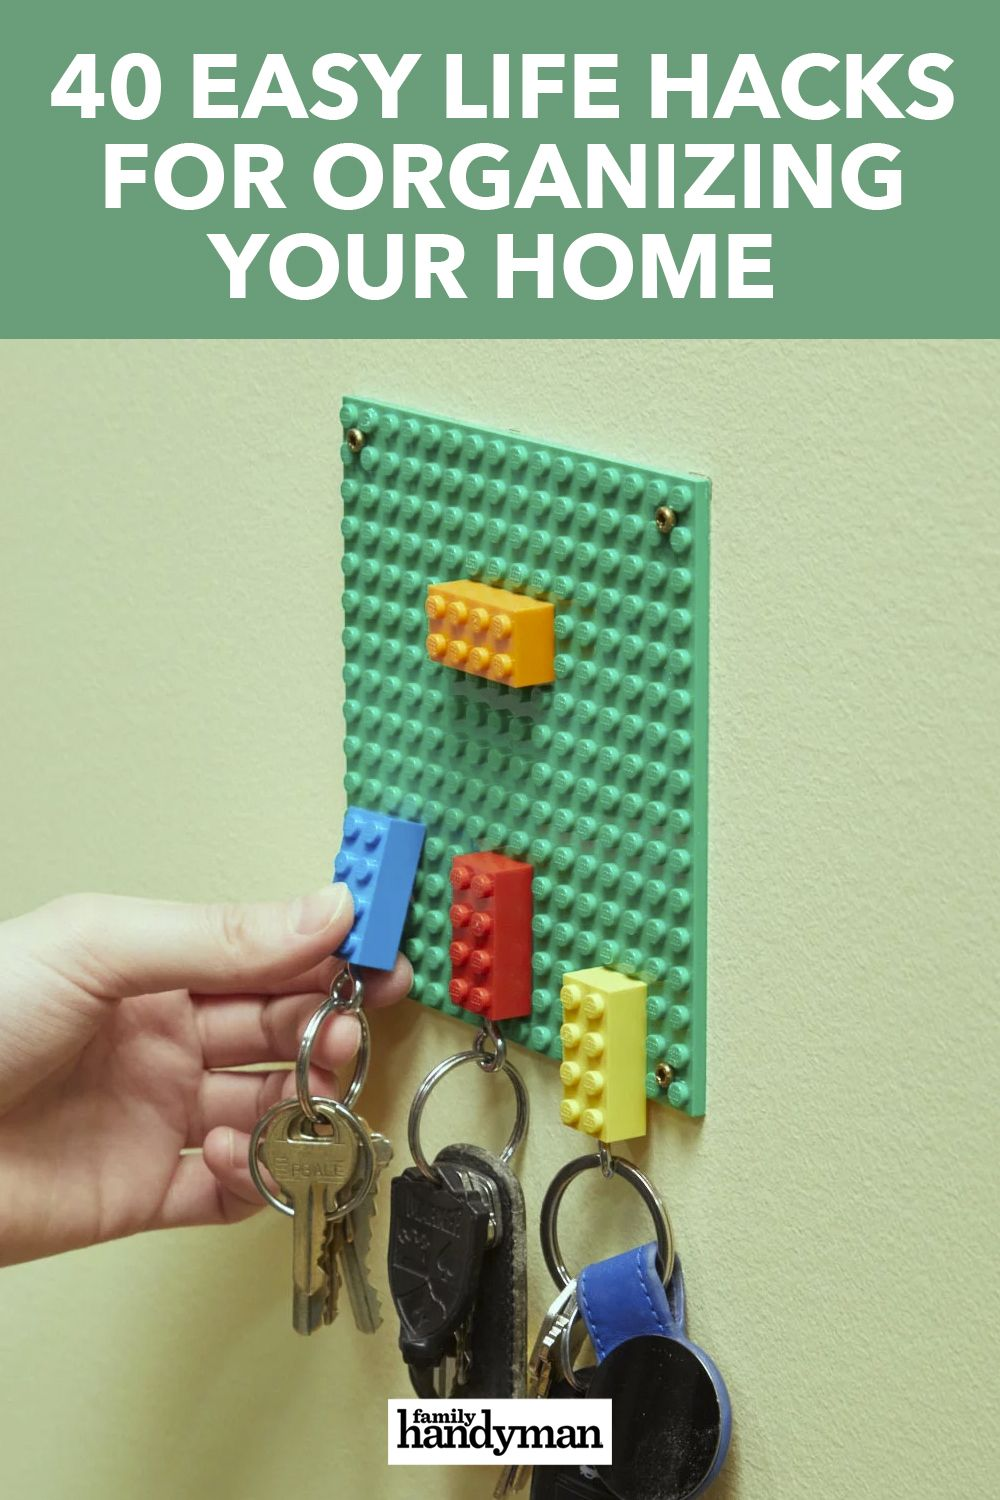 40 Easy Life Hacks For Organizing Your Home Organizing Your Home Simple Life Hacks Organization